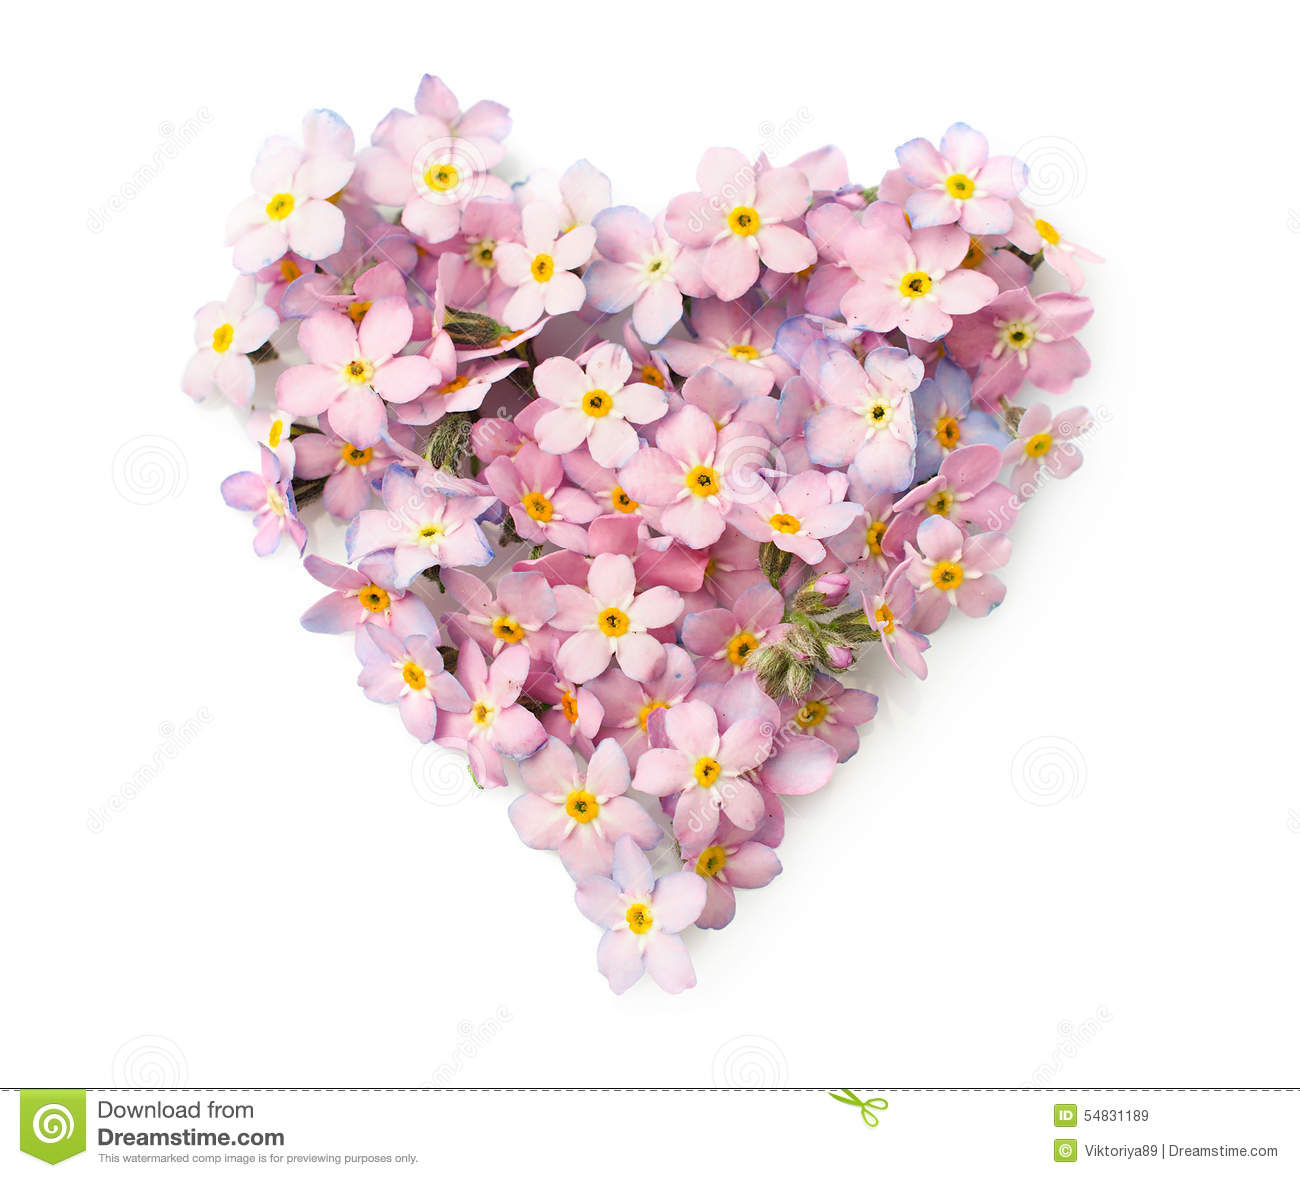 The forget me not flowers in a shape of heart stock image image of the forget me not flowers in a shape of heart mightylinksfo